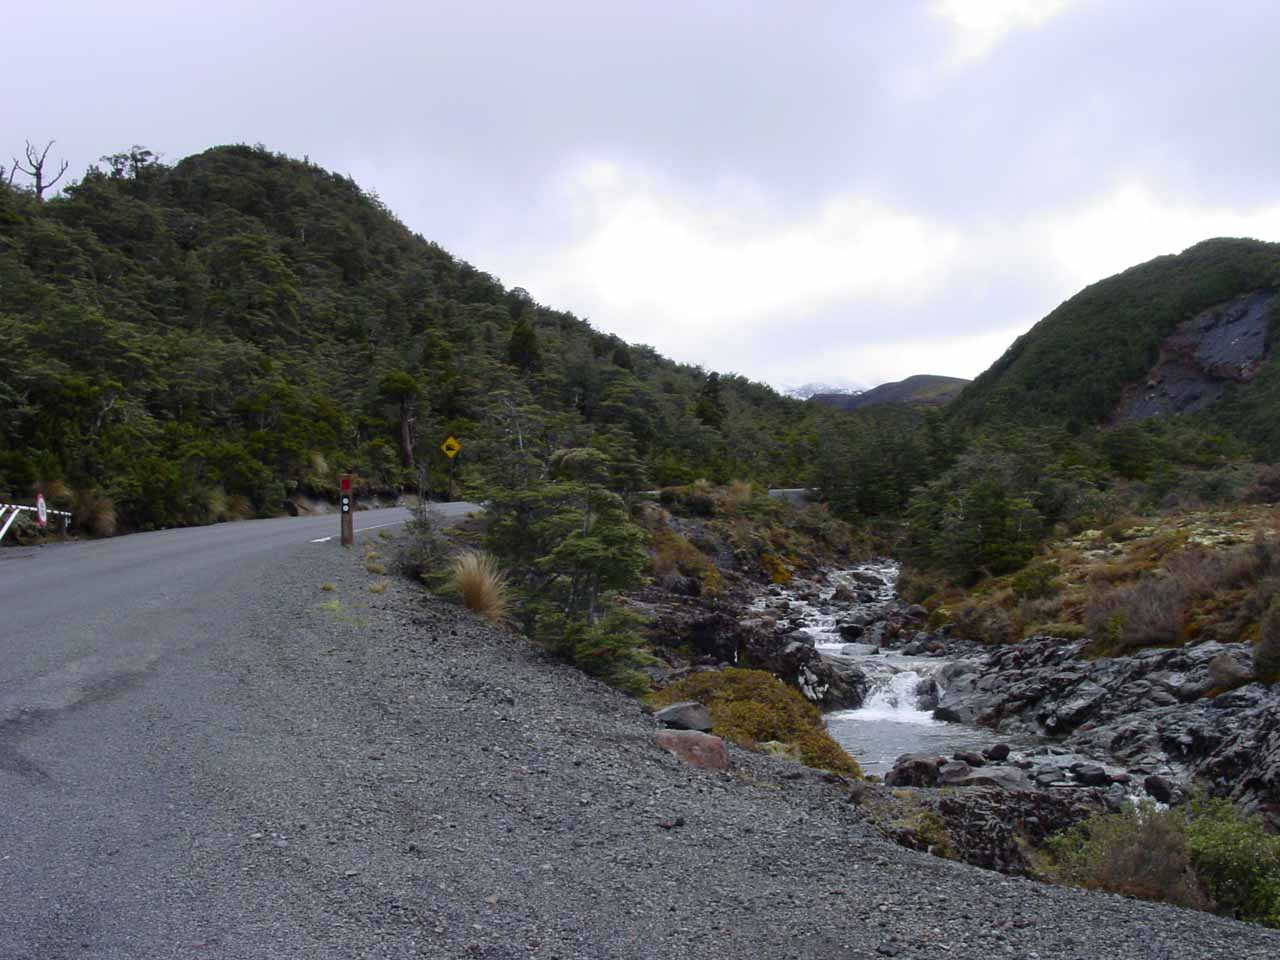 Looking further uphill along the Ohakune Mountain Road from the car park for Mangawhero Falls